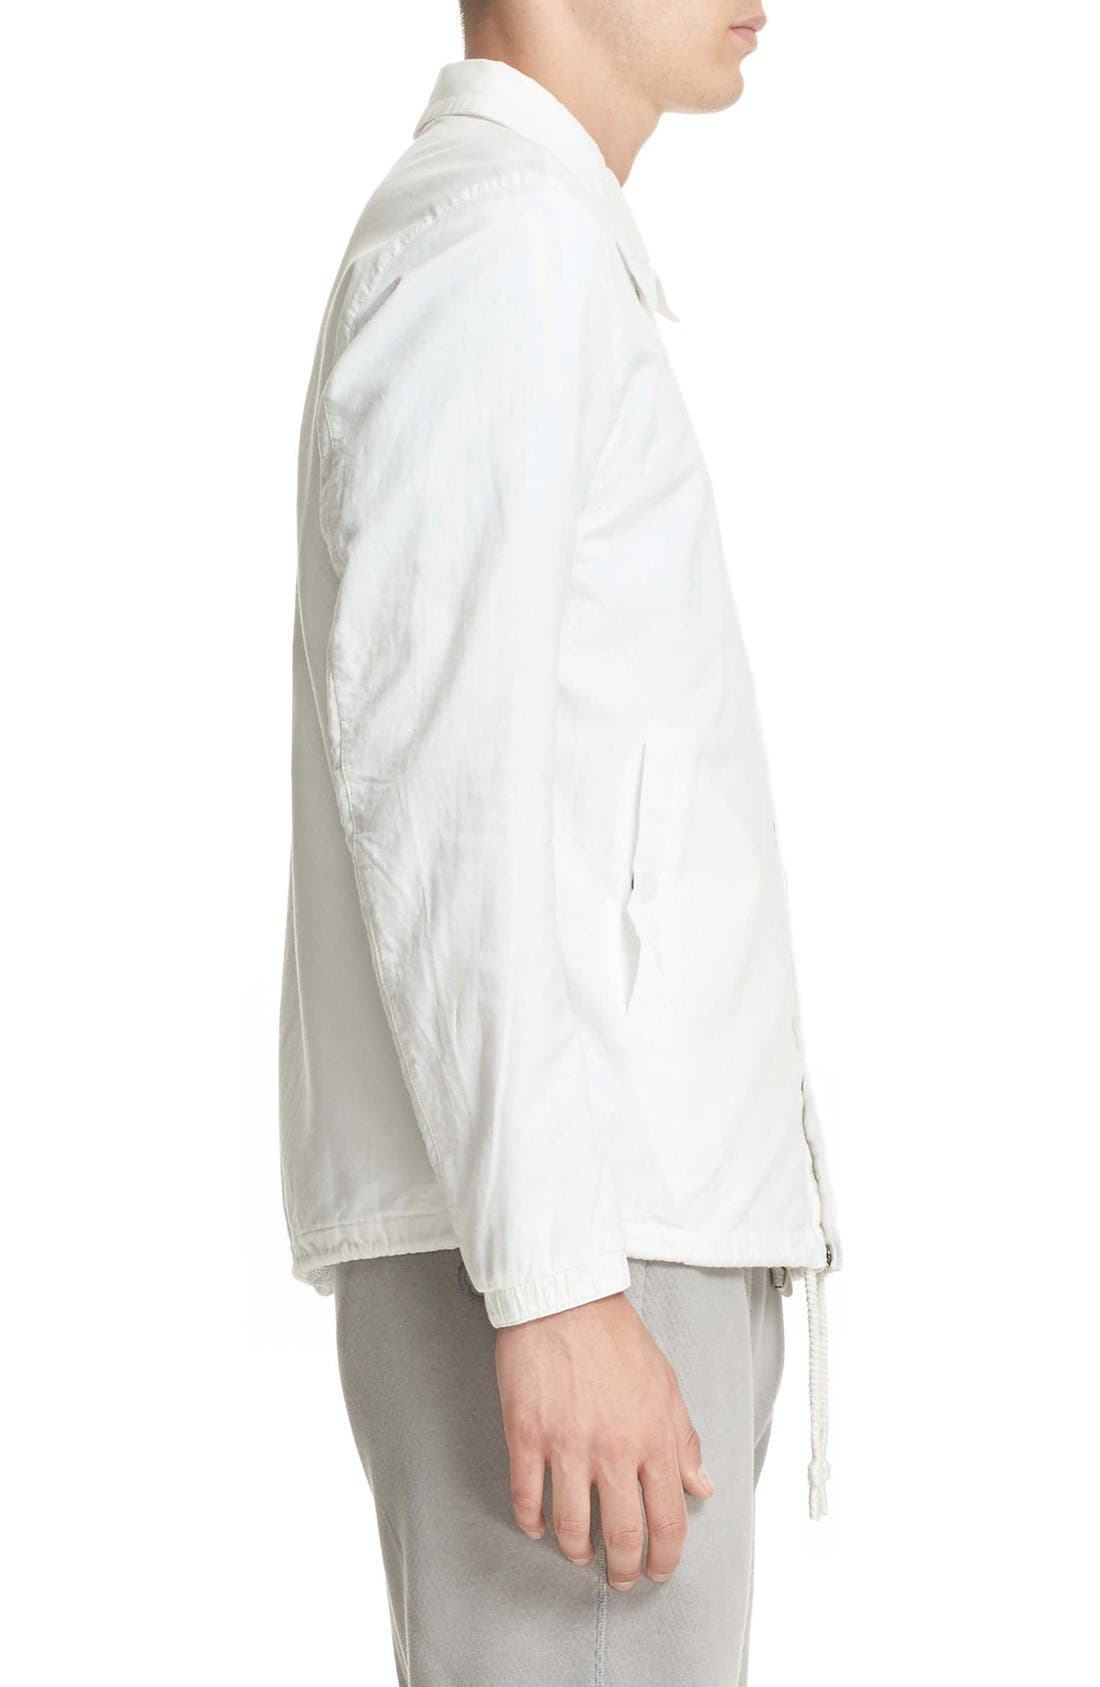 Cotton & Linen Coach Jacket,                             Alternate thumbnail 3, color,                             Off White